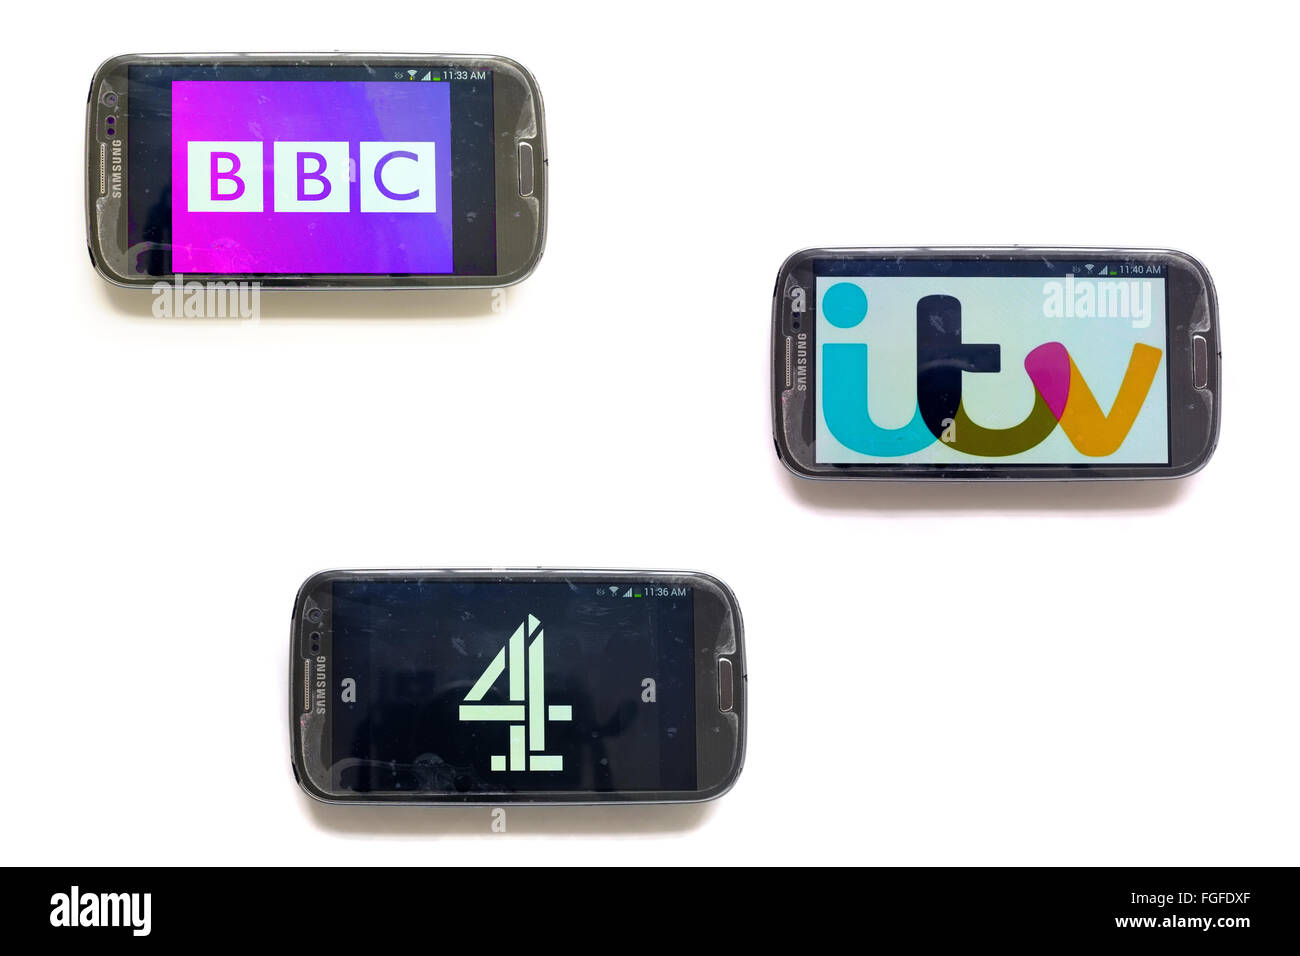 The logos of British TV companies on smartphone screens photographed against a white background. - Stock Image